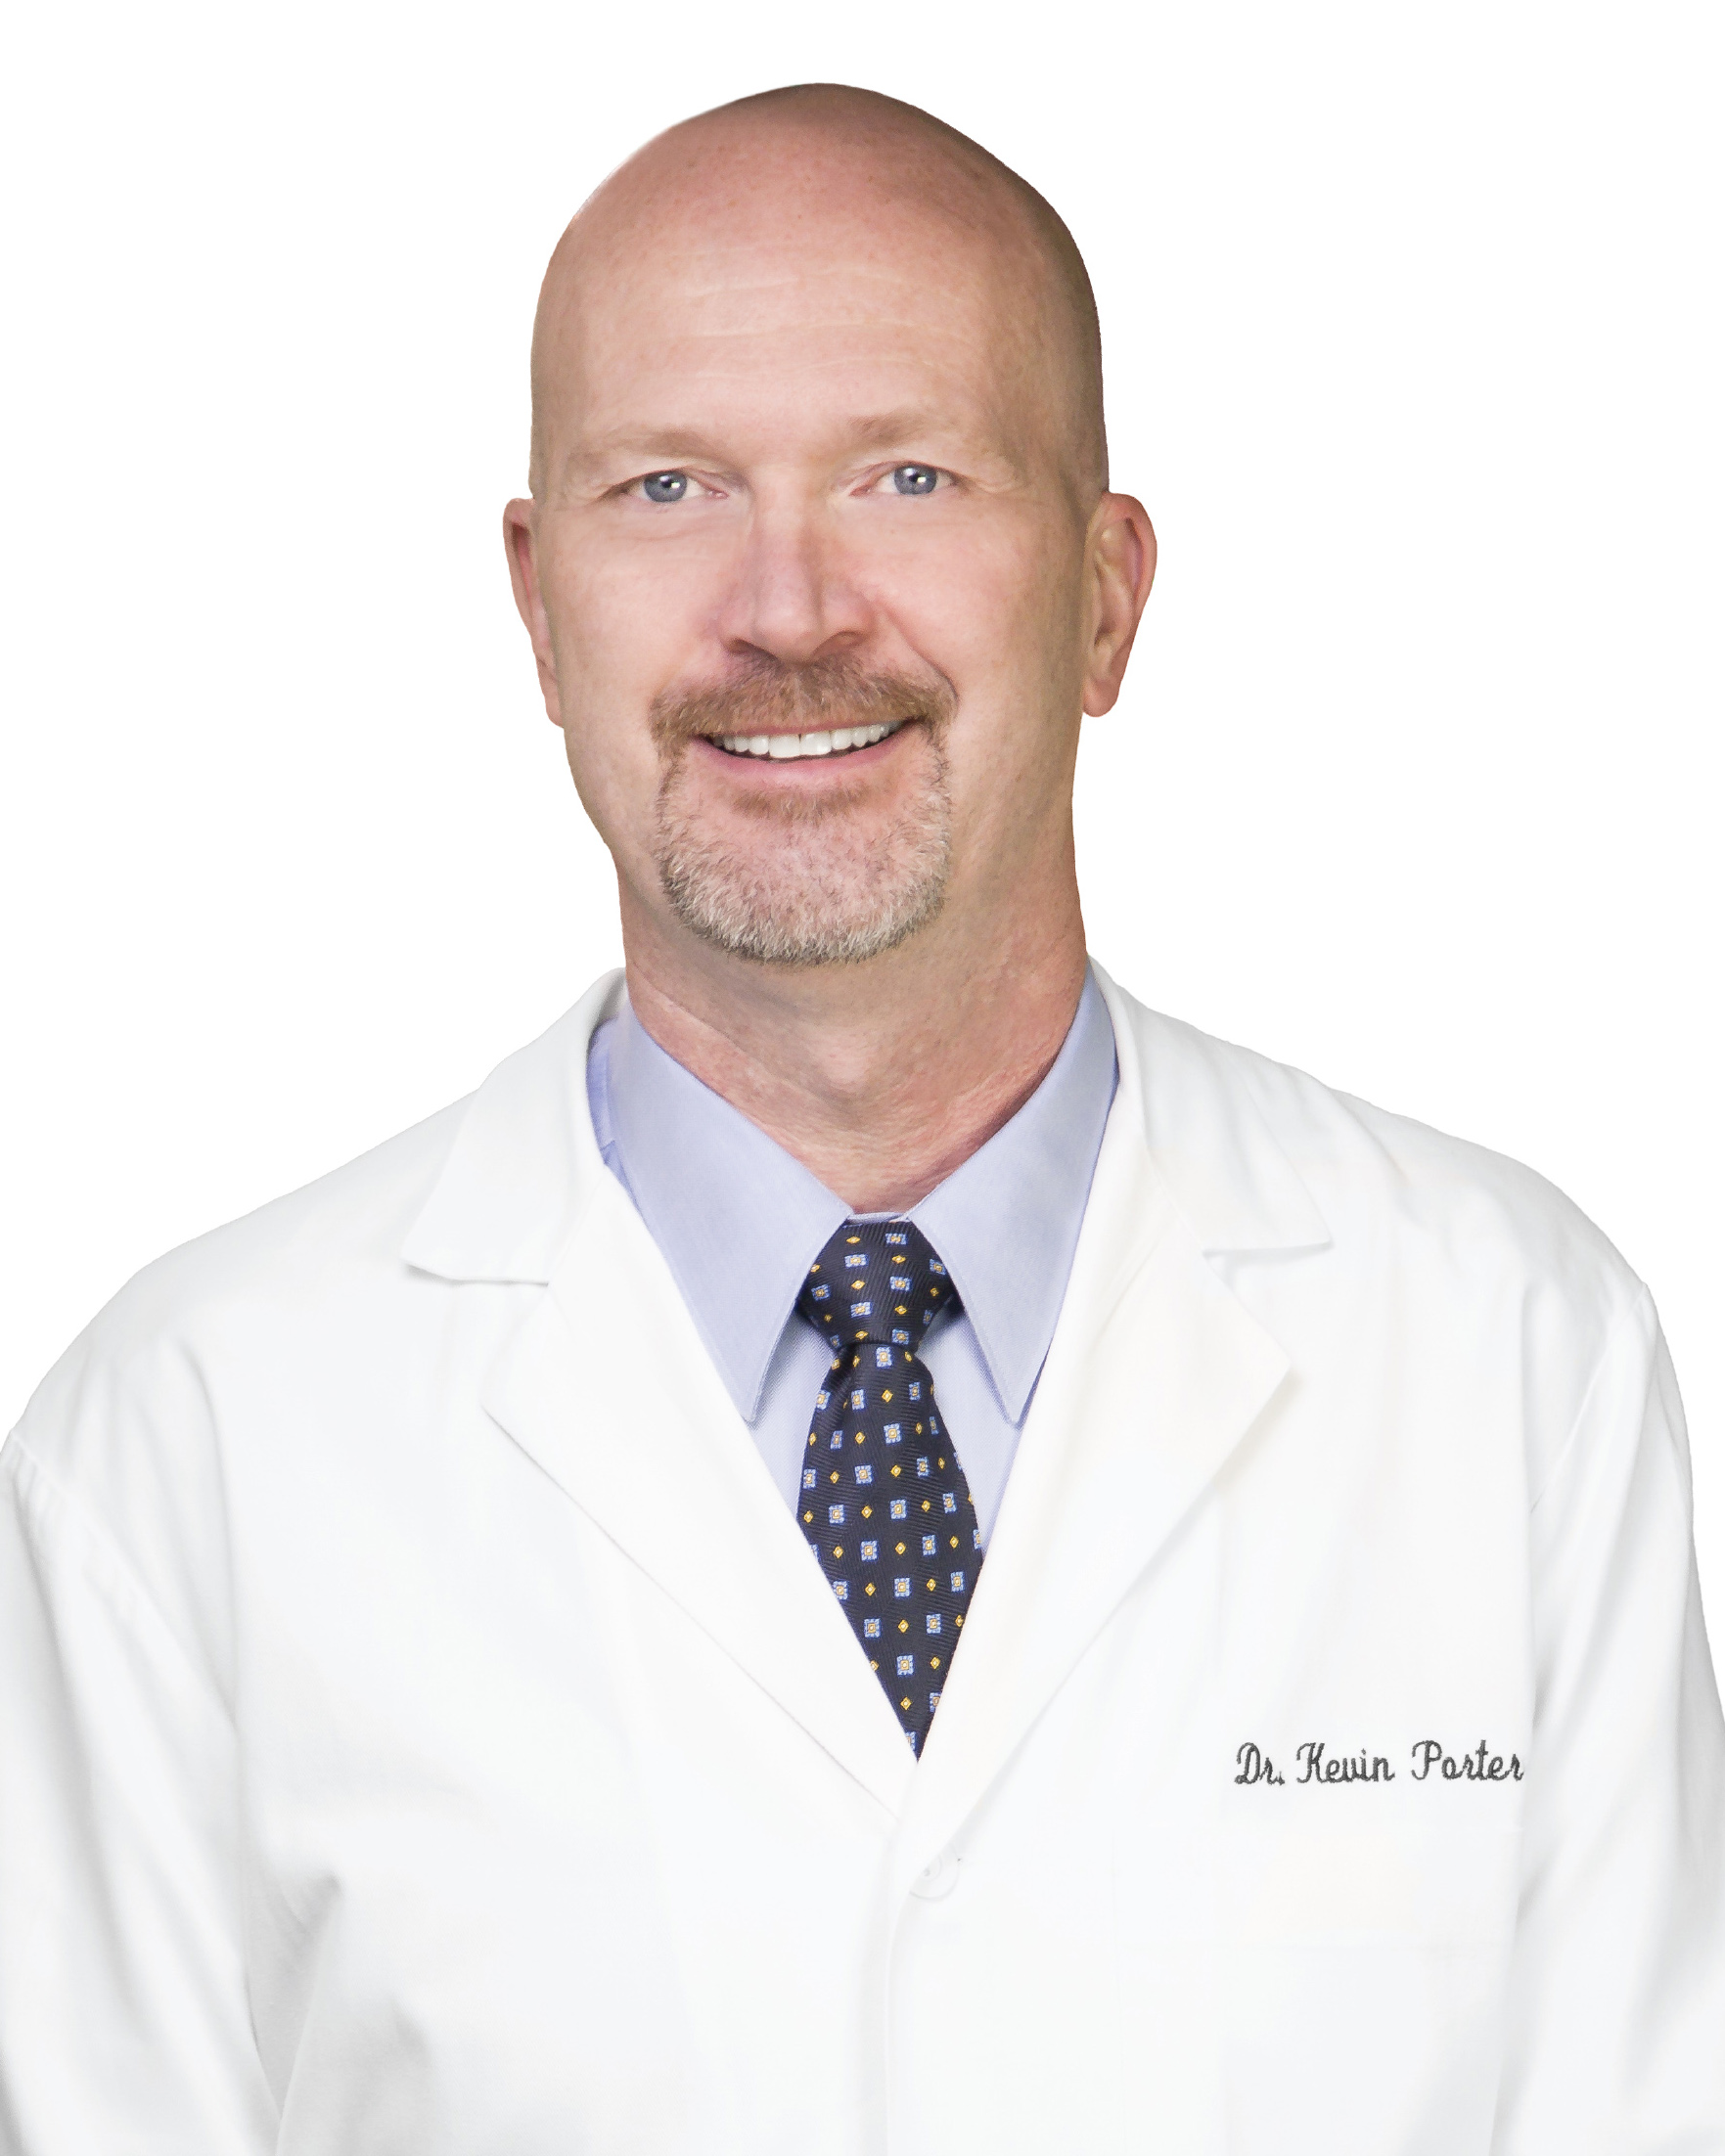 Kevin E Porter, DDS, MD